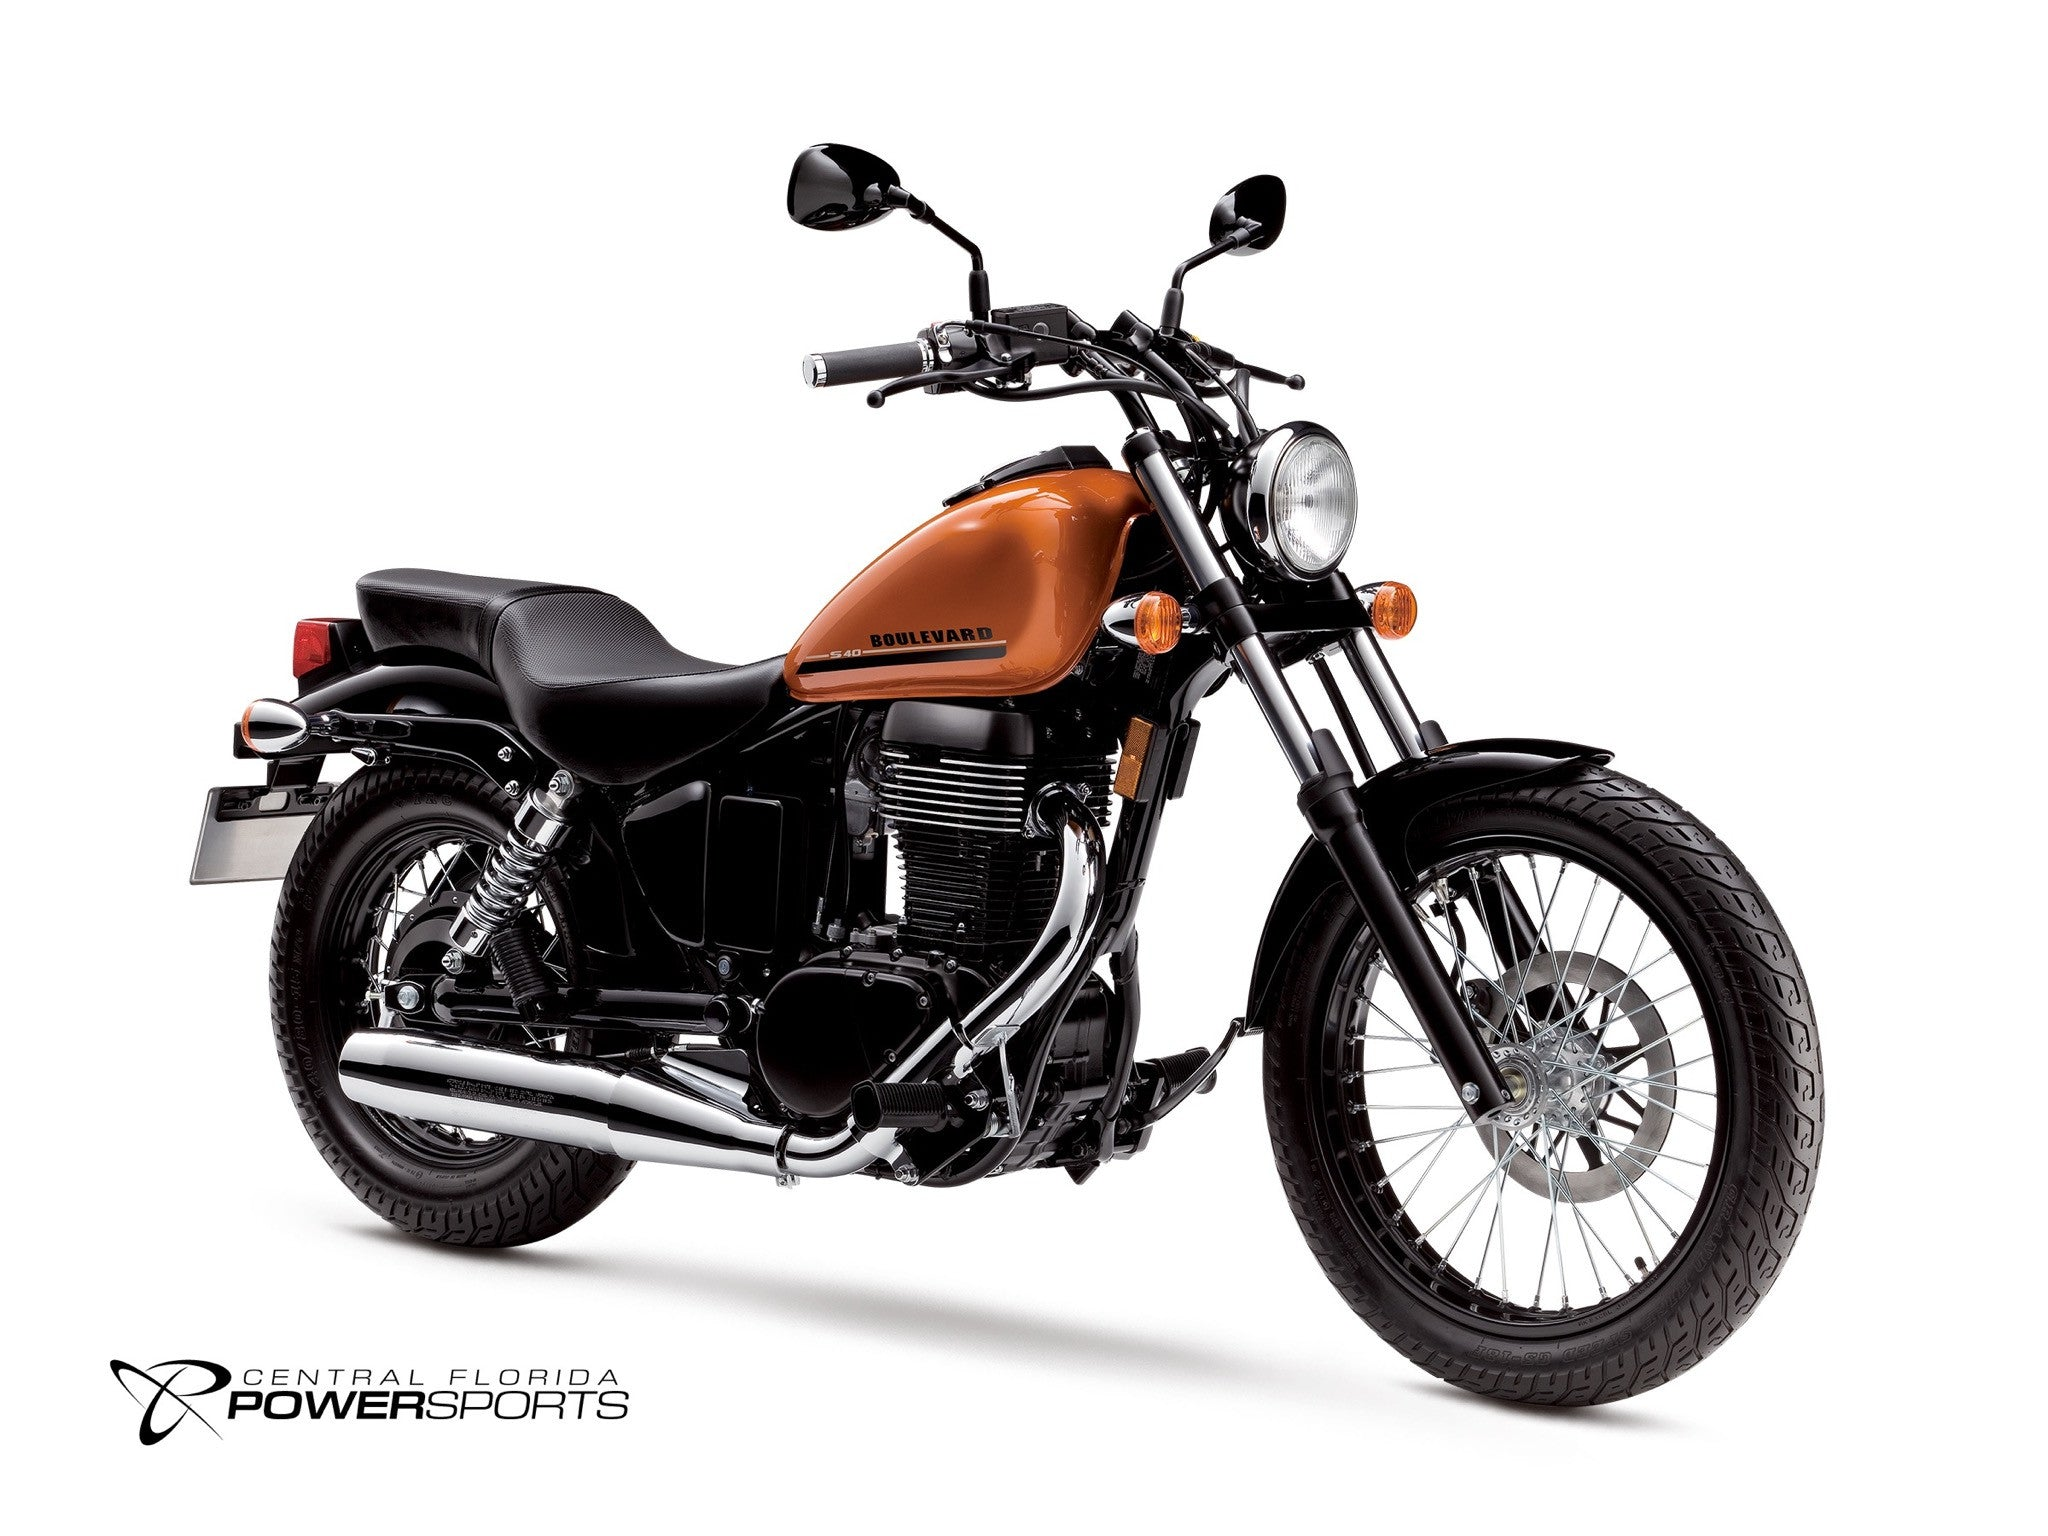 2017 suzuki boulevard s40 motorcycle for sale central florida powersports